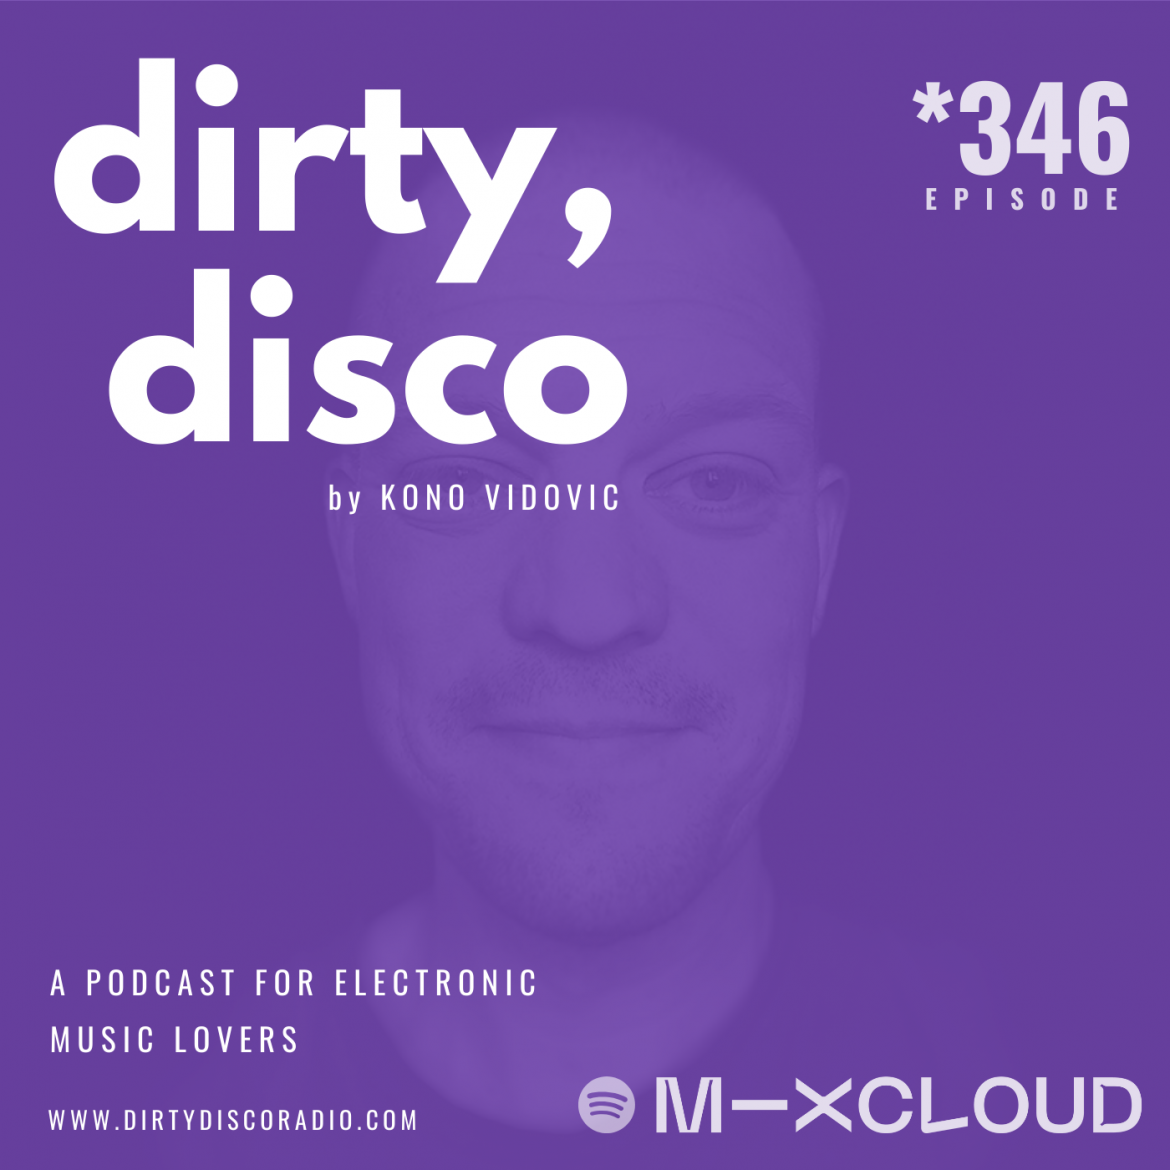 Essential mix | Electronic Music Podcast 346 | Dirty Disco with Kono Vidovic